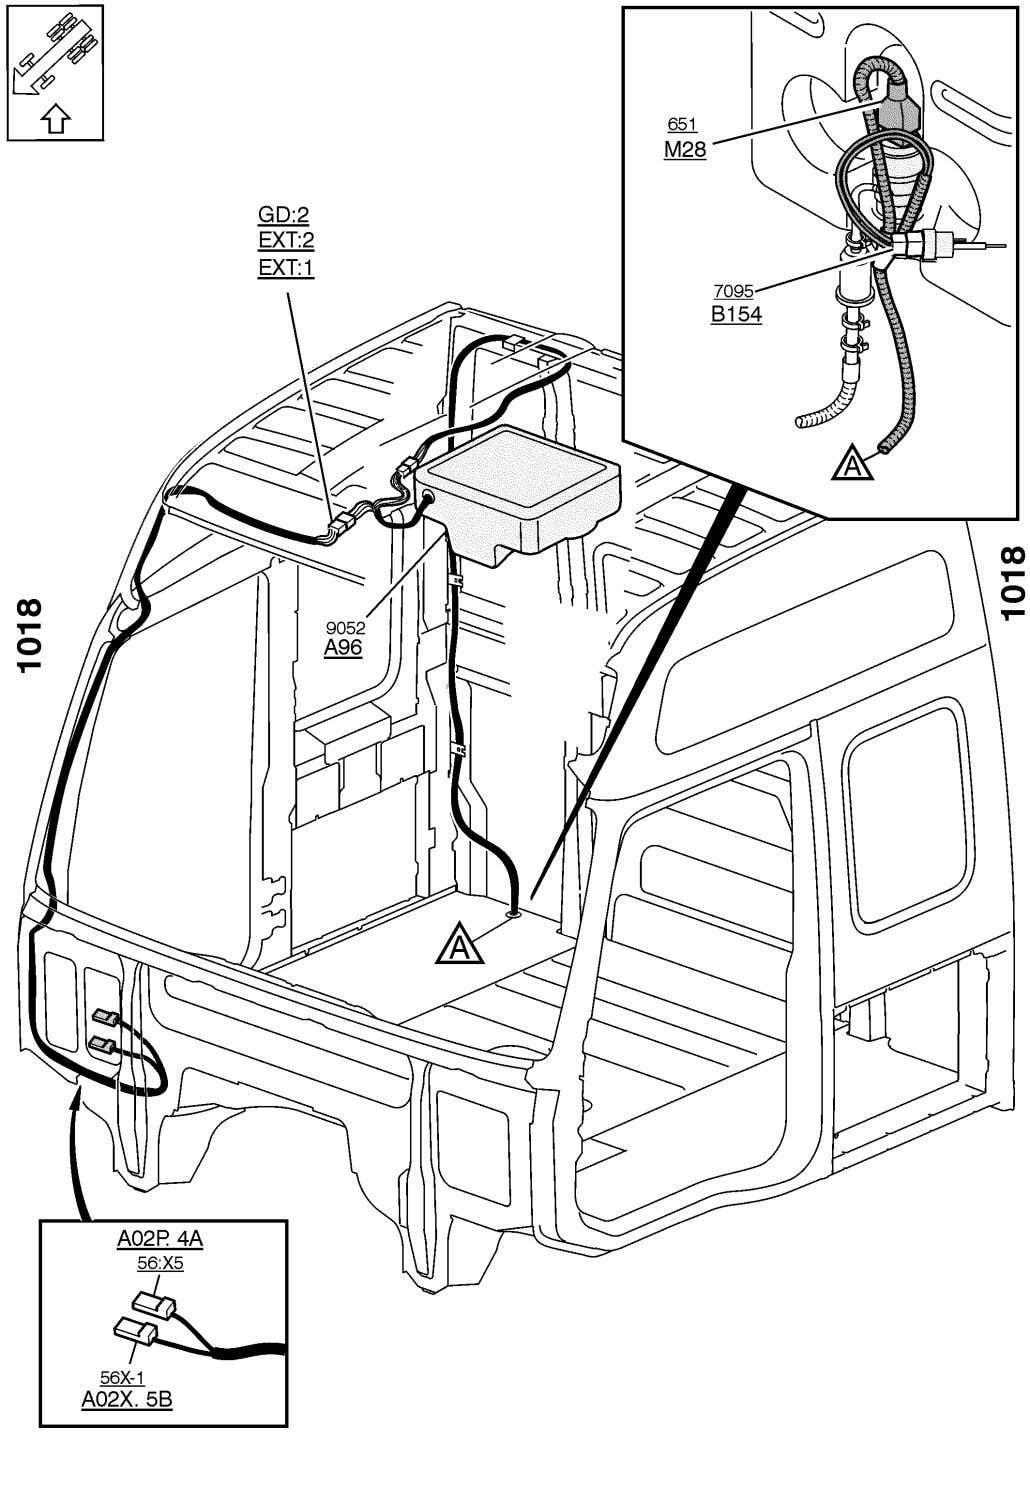 T3017279 Page 154 (298) Wiring diagram